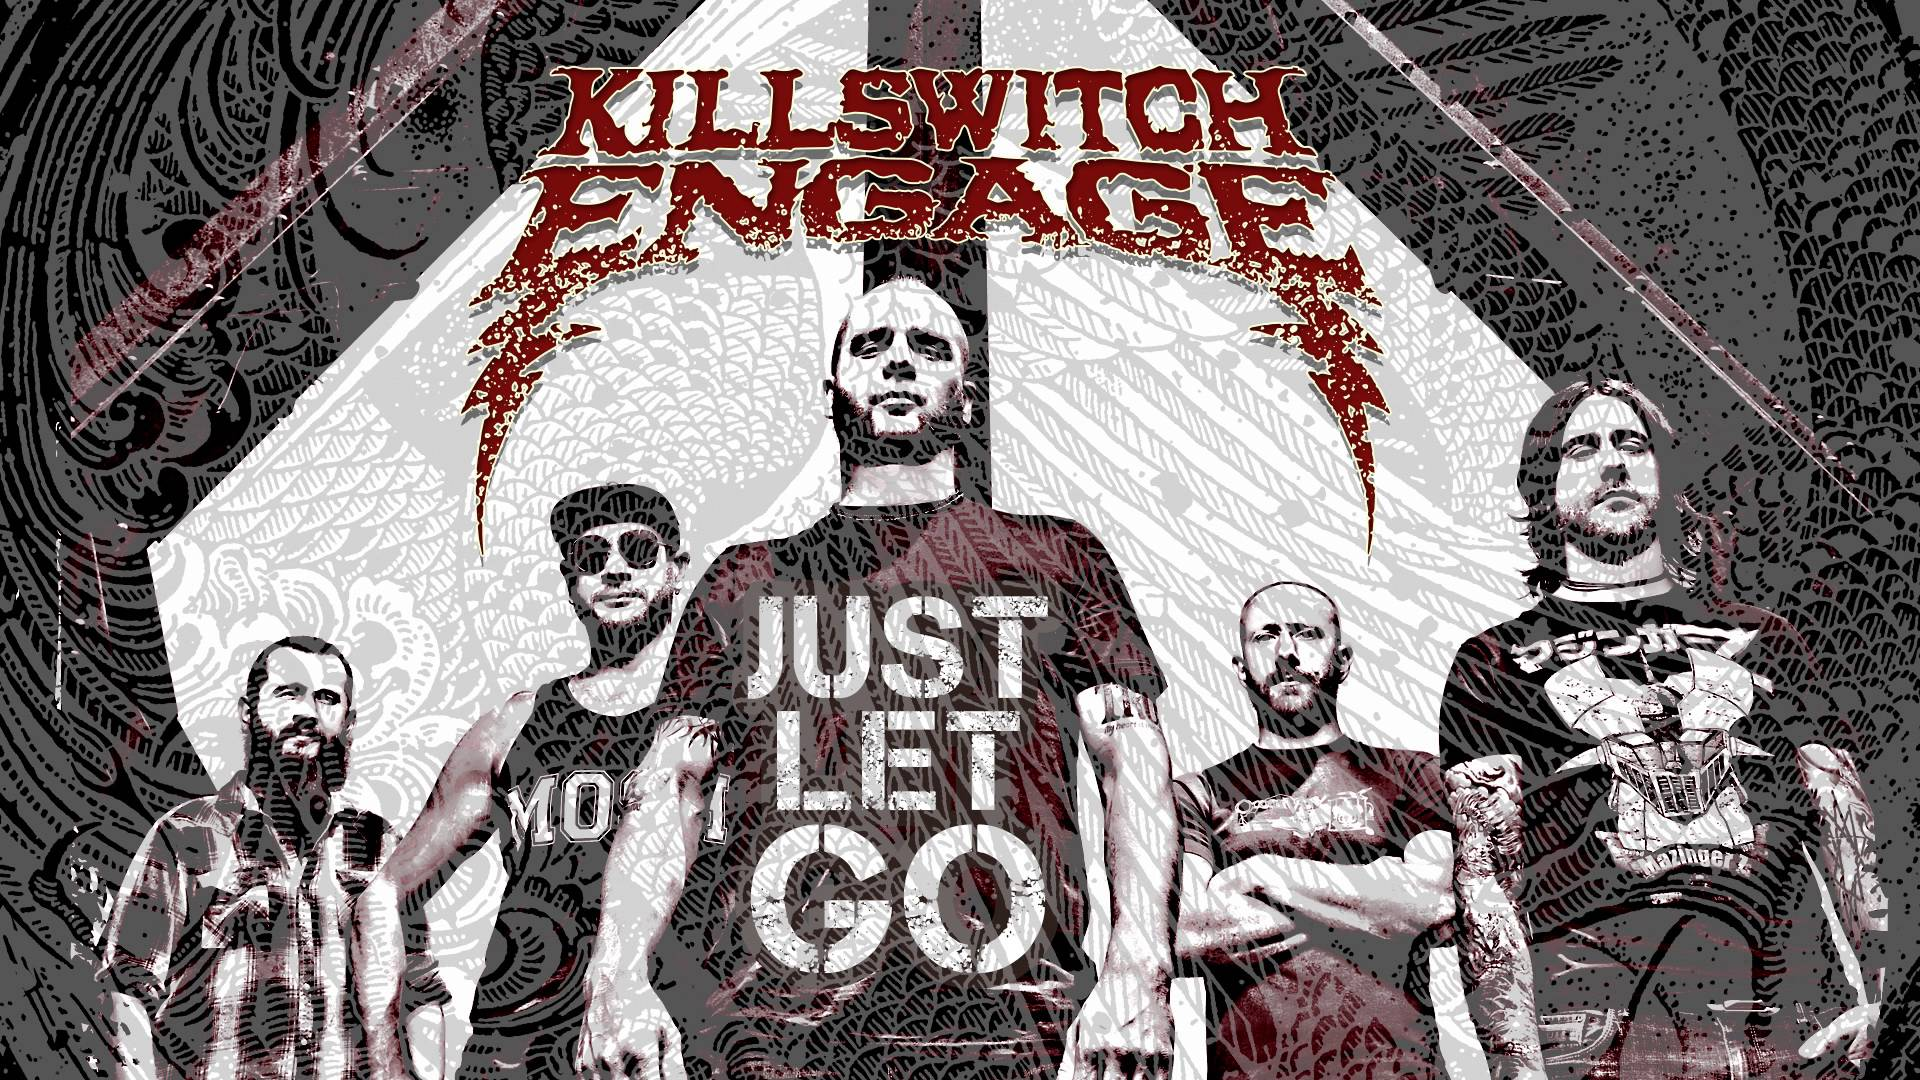 Killswitch Engage wallpapers, Music, HQ Killswitch Engage